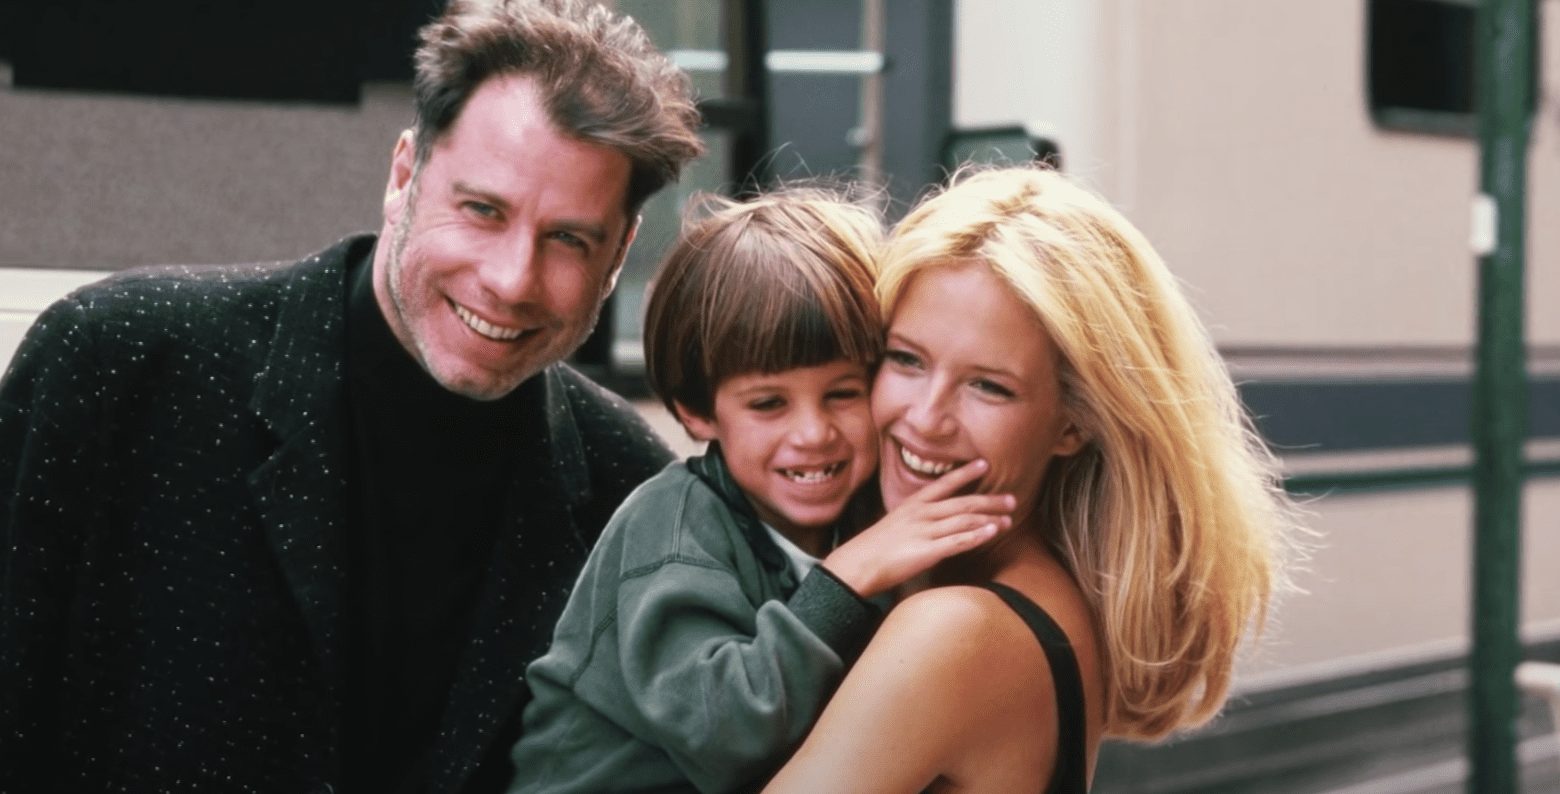 Image Source: Youtube/Access| Kelly and John with their son